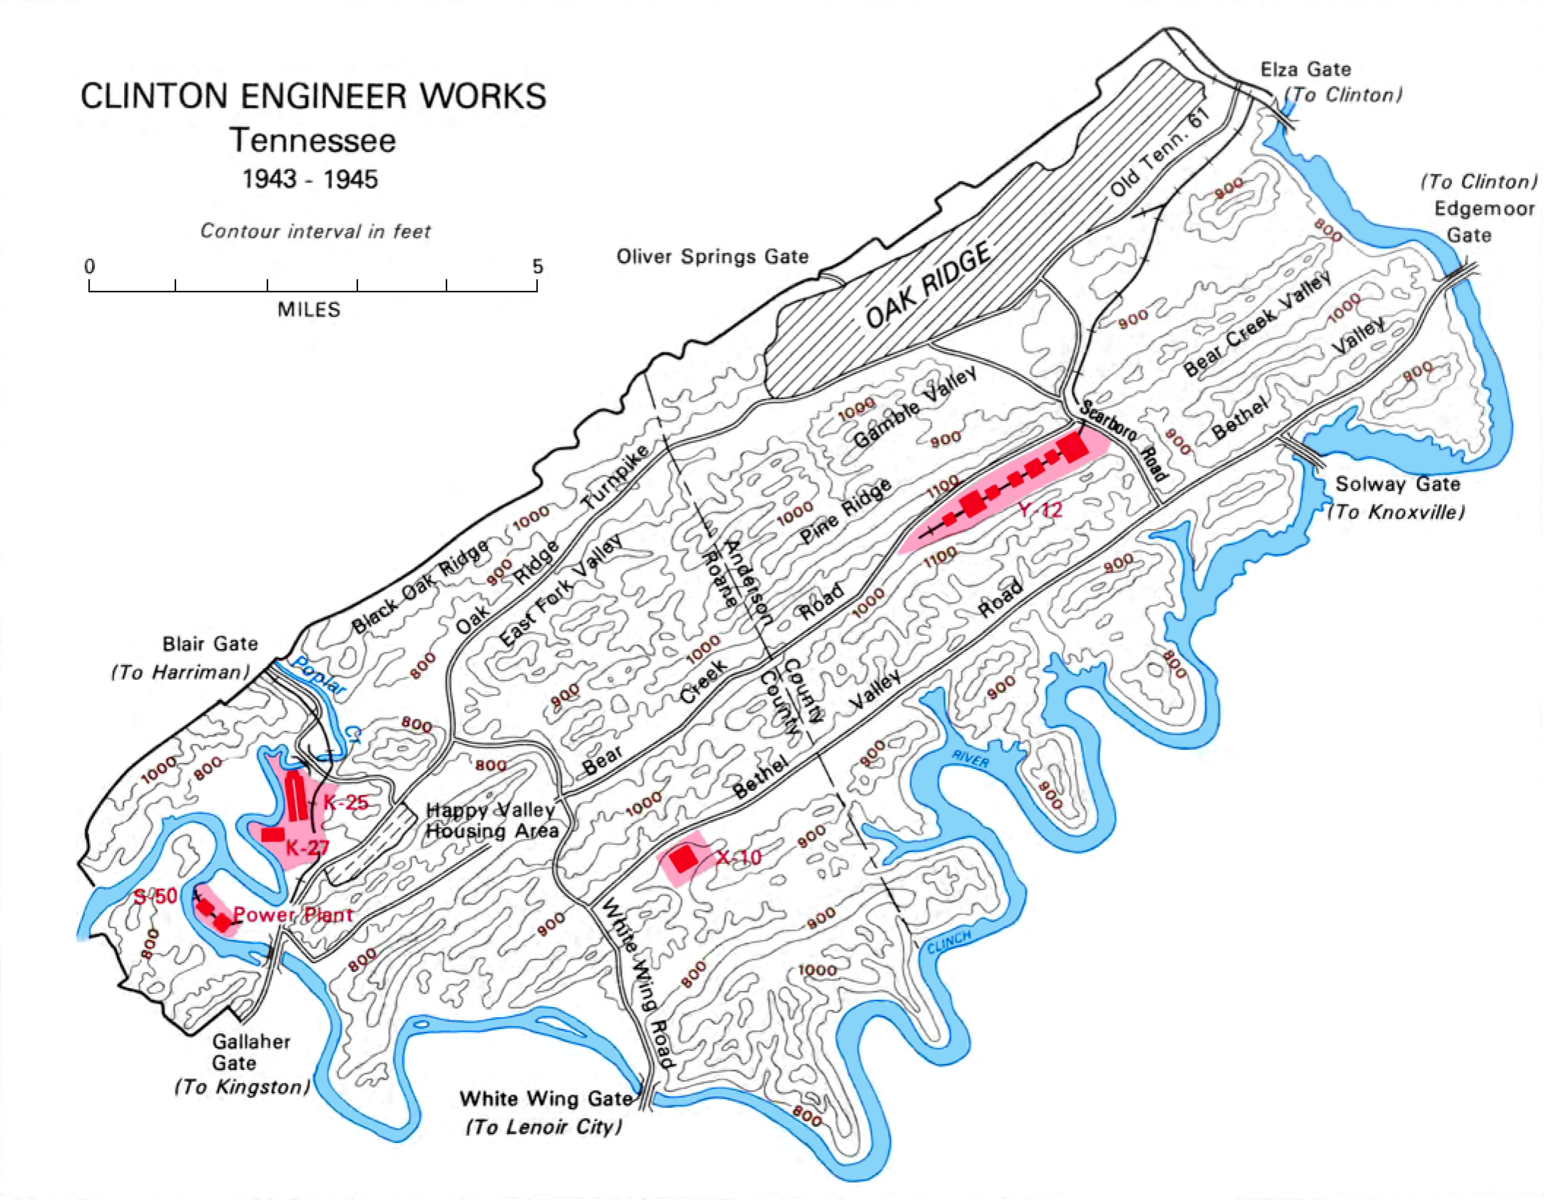 clinton engineer works map